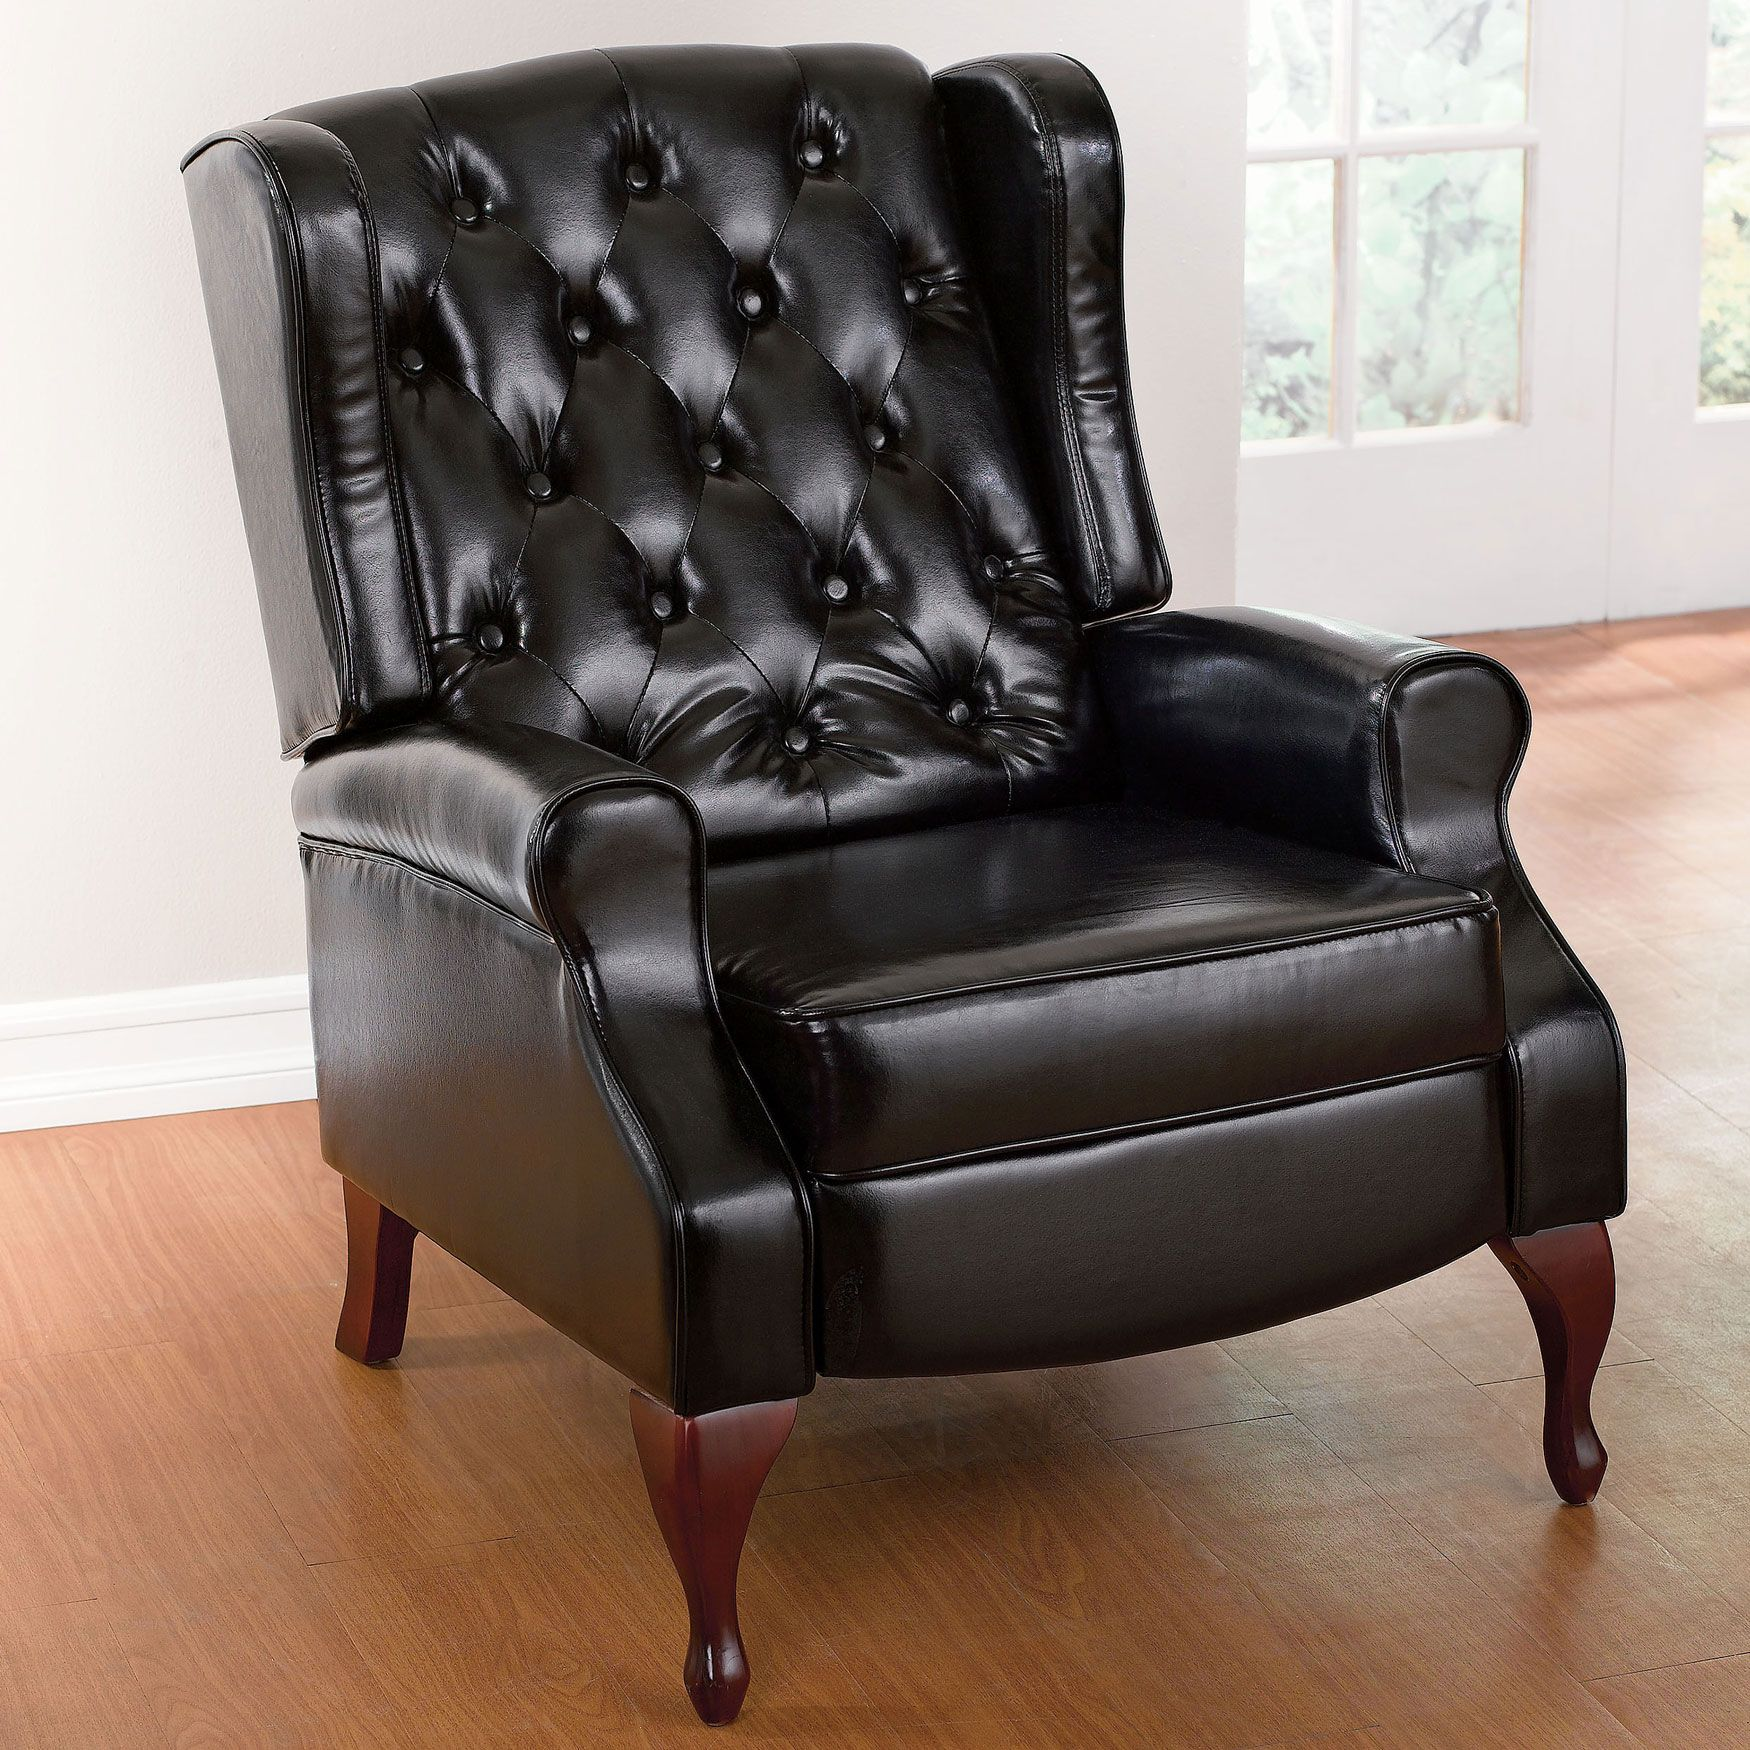 queen anne style tufted wingback recliner plus size extra large